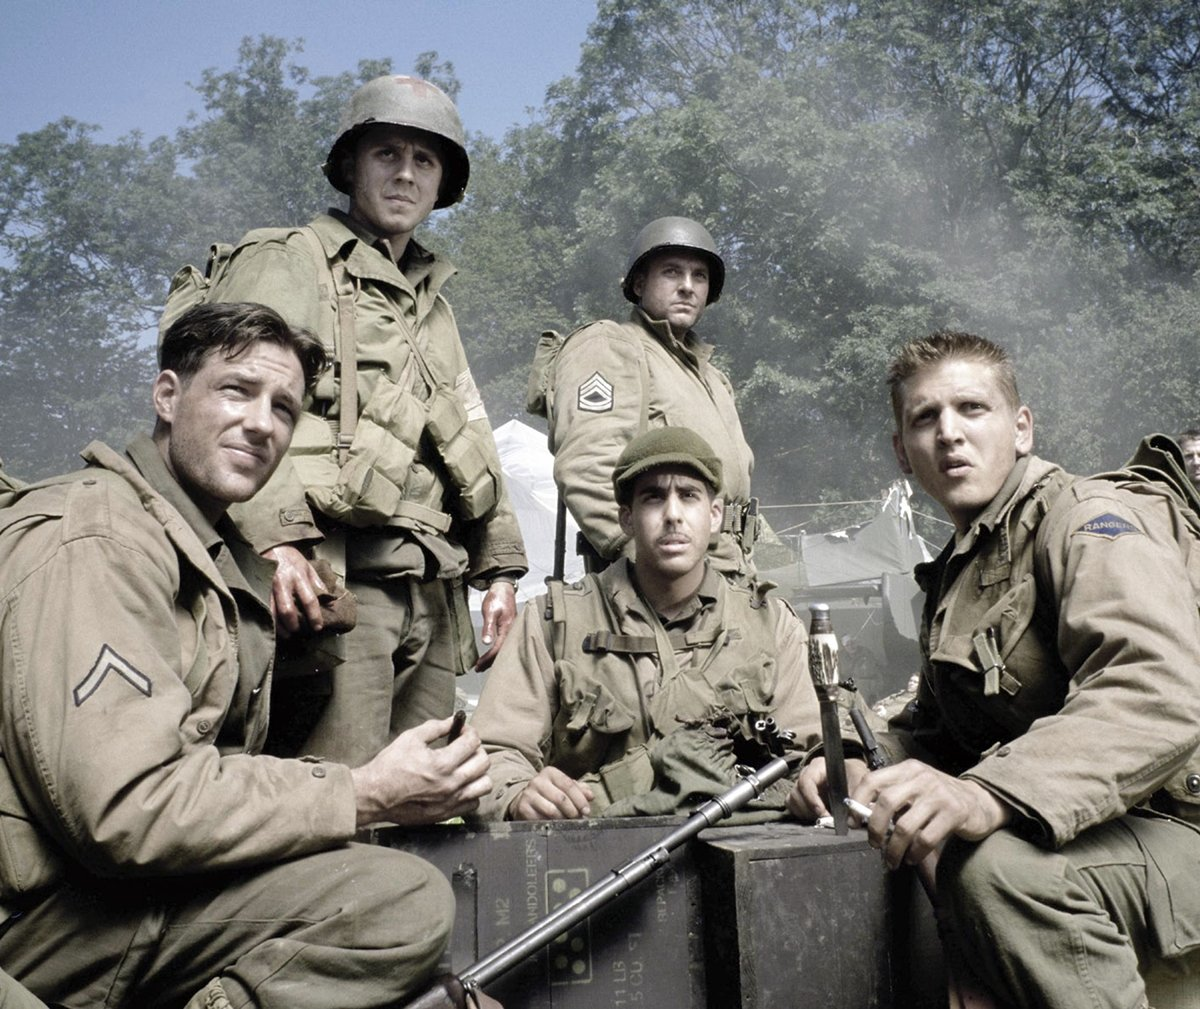 1 12 10 Things You Probably Didn't Know About Saving Private Ryan